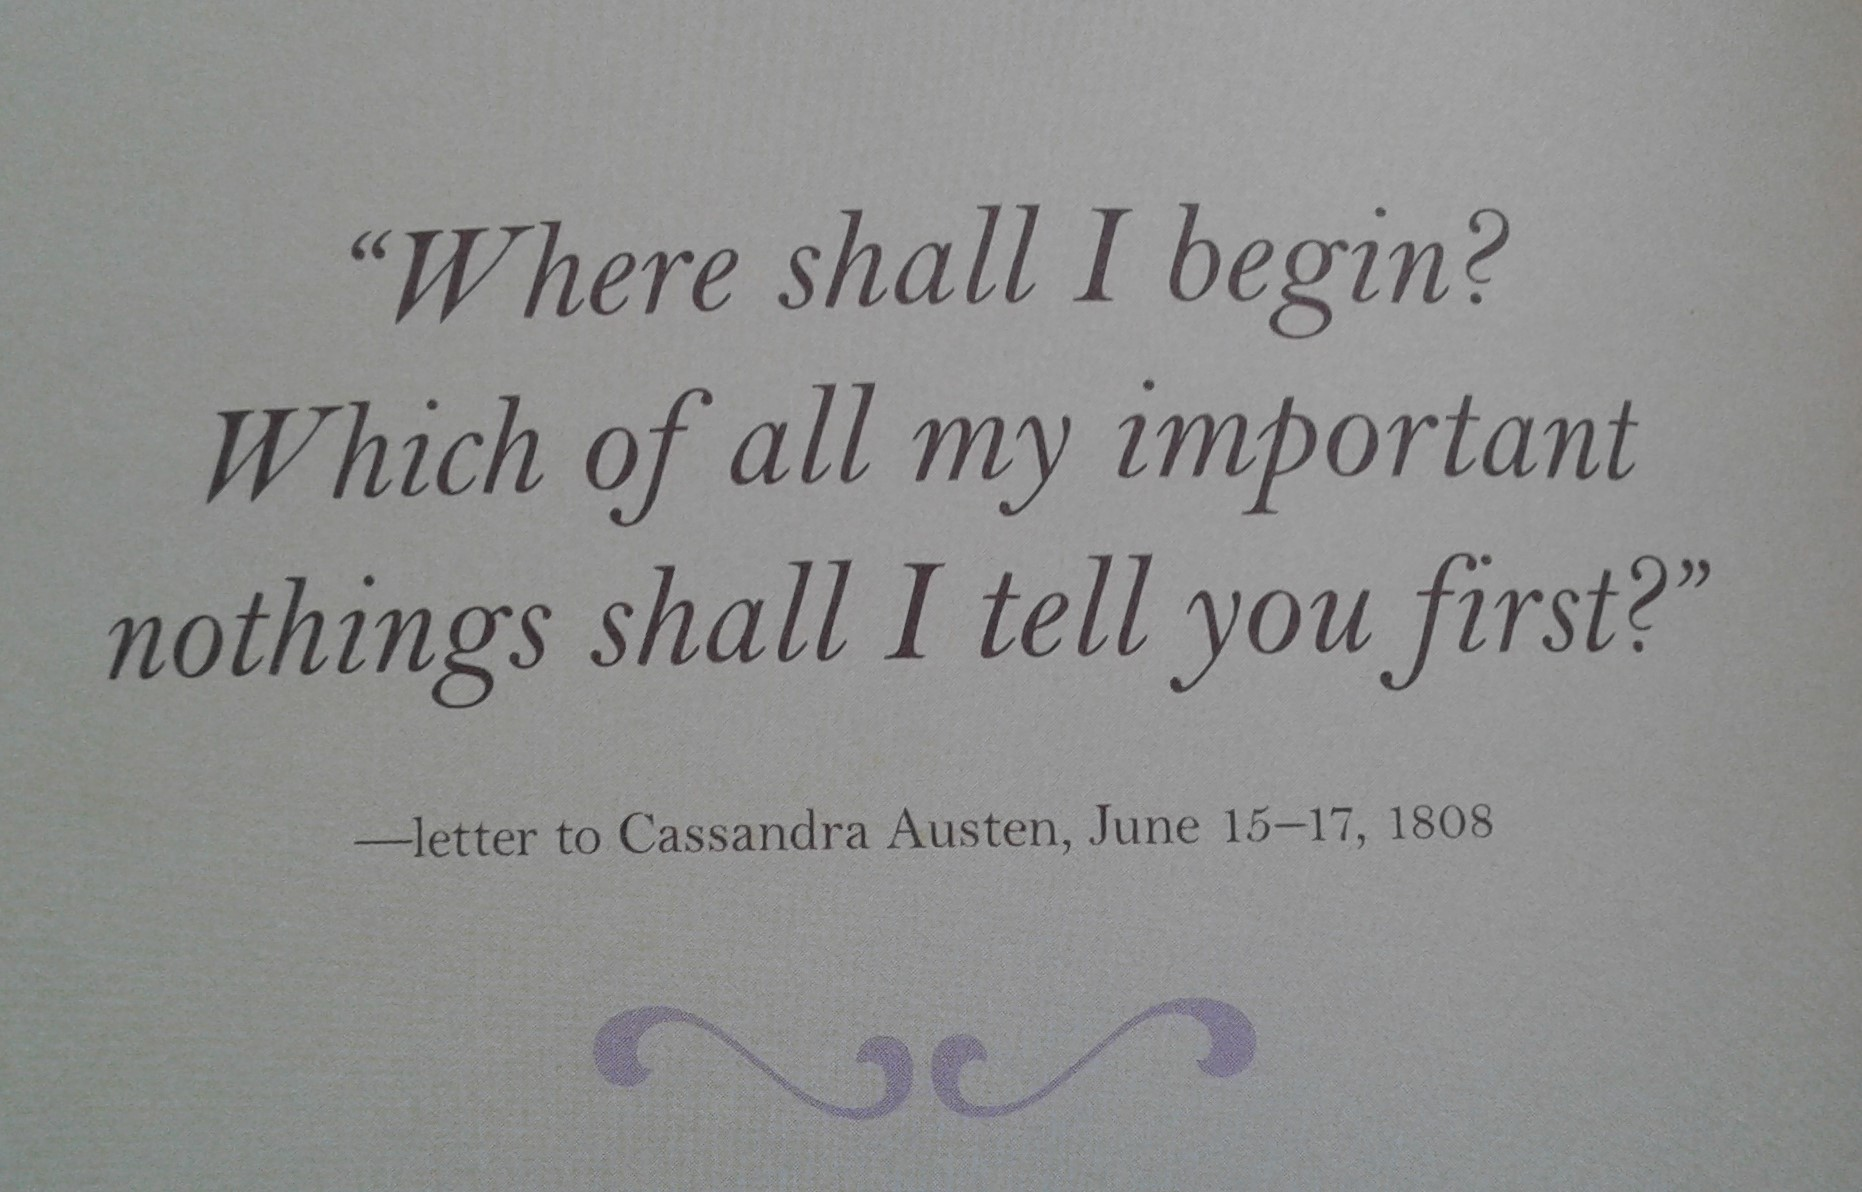 Jane Austen quote re nothings